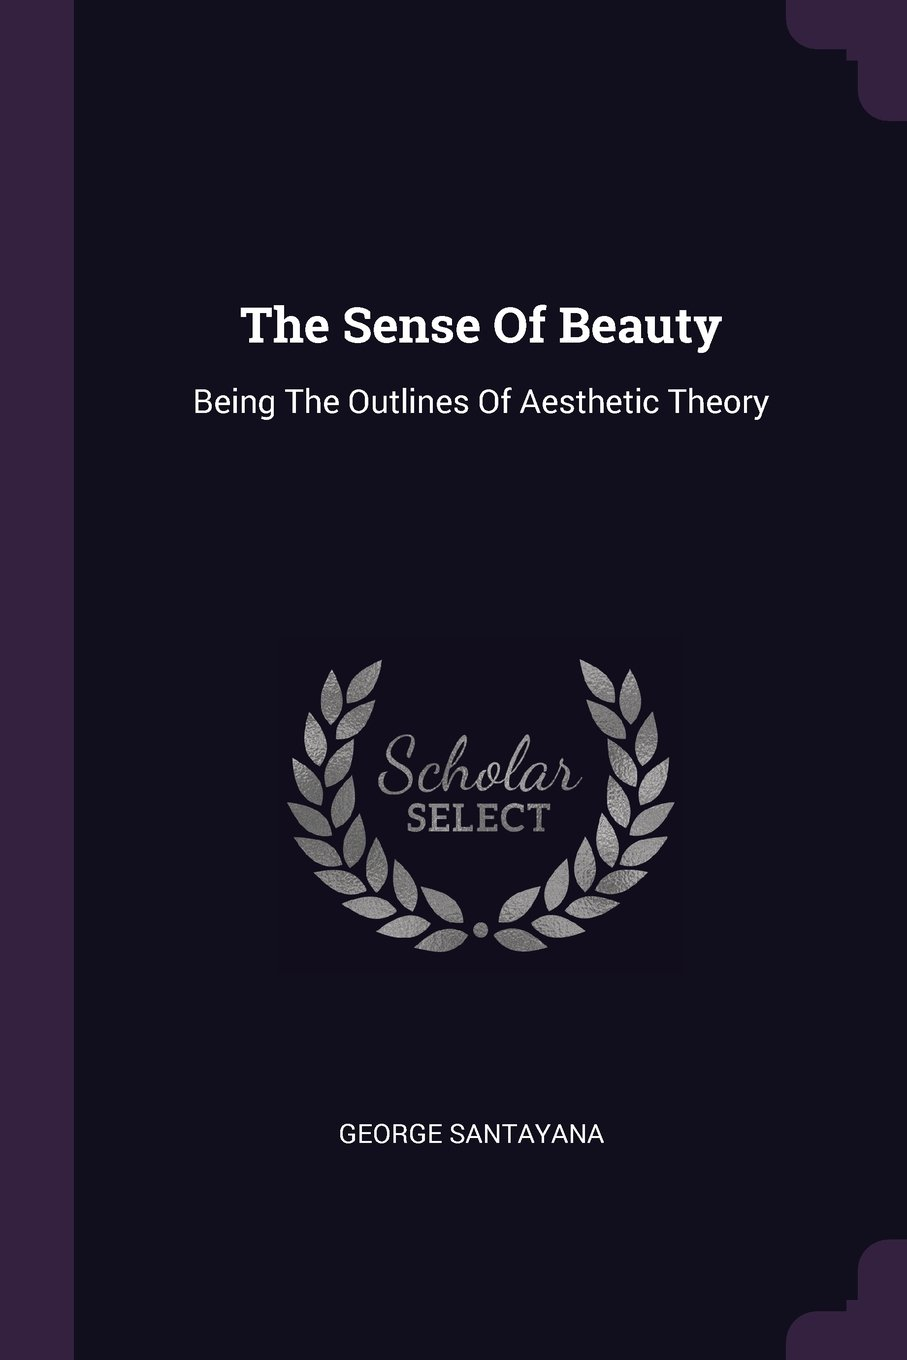 The Sense Of Beauty: Being The Outlines Of Aesthetic Theory PDF